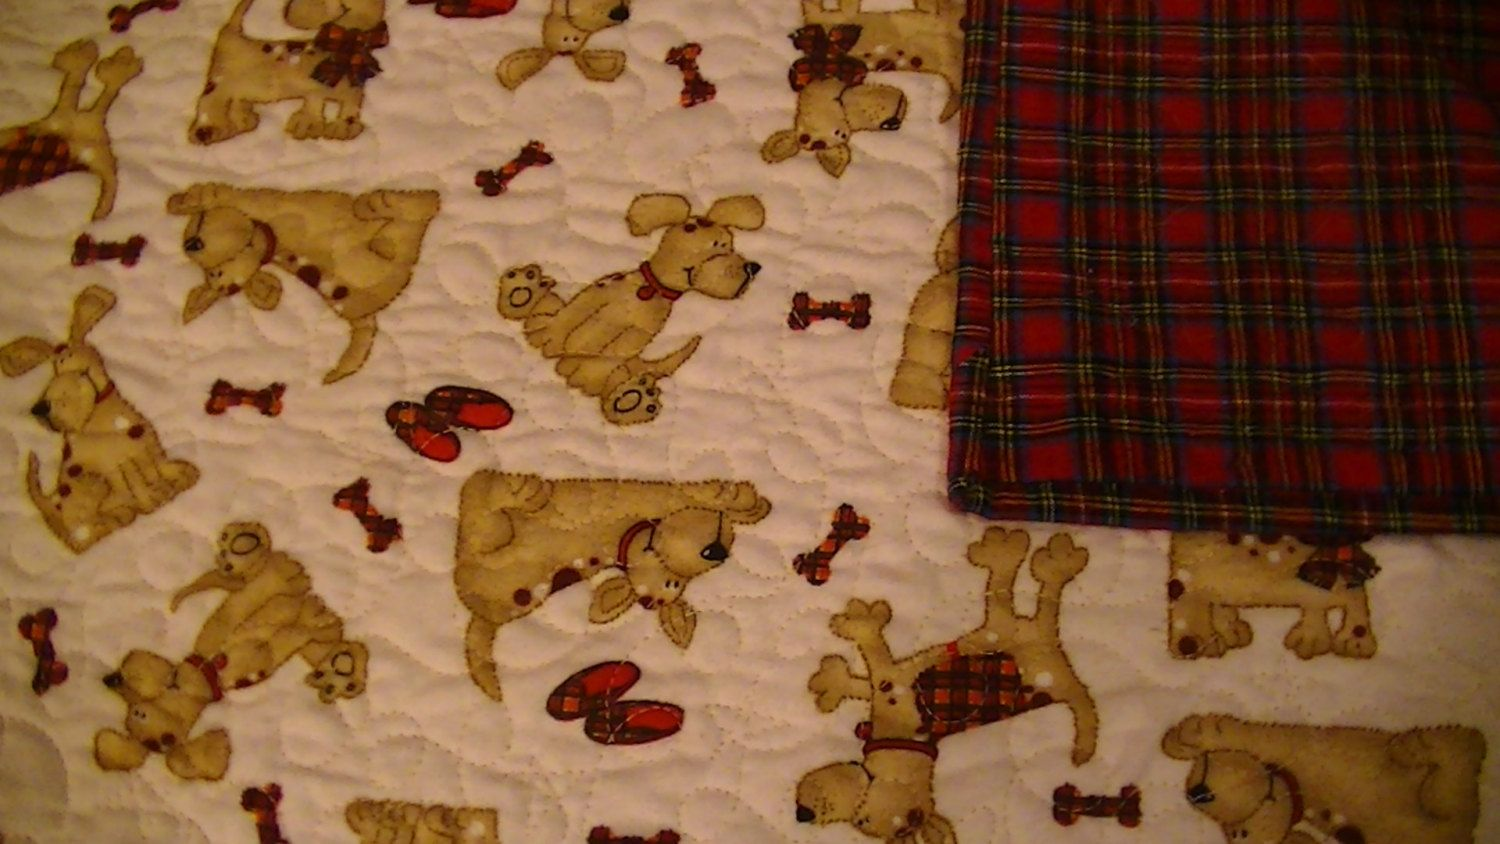 Whole Cloth Flannel Baby Quilt Puppy Dog Red Plaid - handmade quilted crib by TravisCreek on Etsy